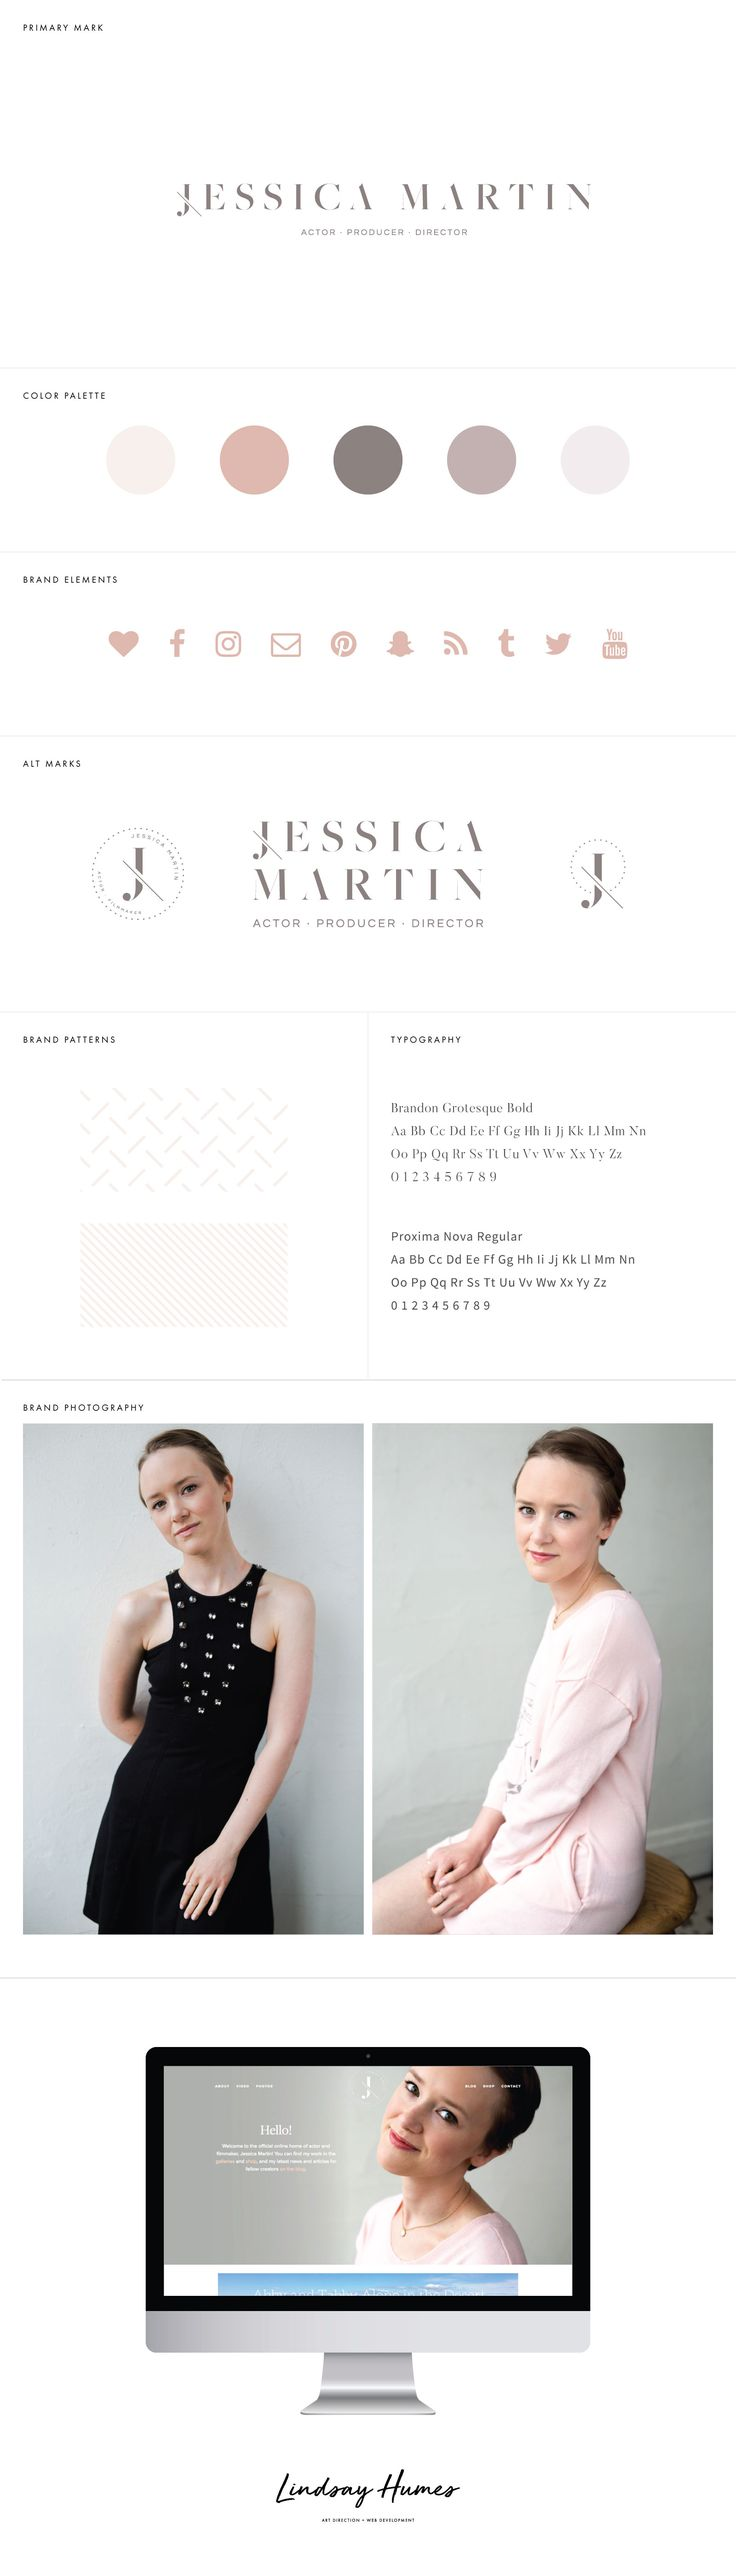 Jessica Erin Martin - actor's website, logo design, wordpress theme, mood board inspiration, blog design idea, graphic design, branding